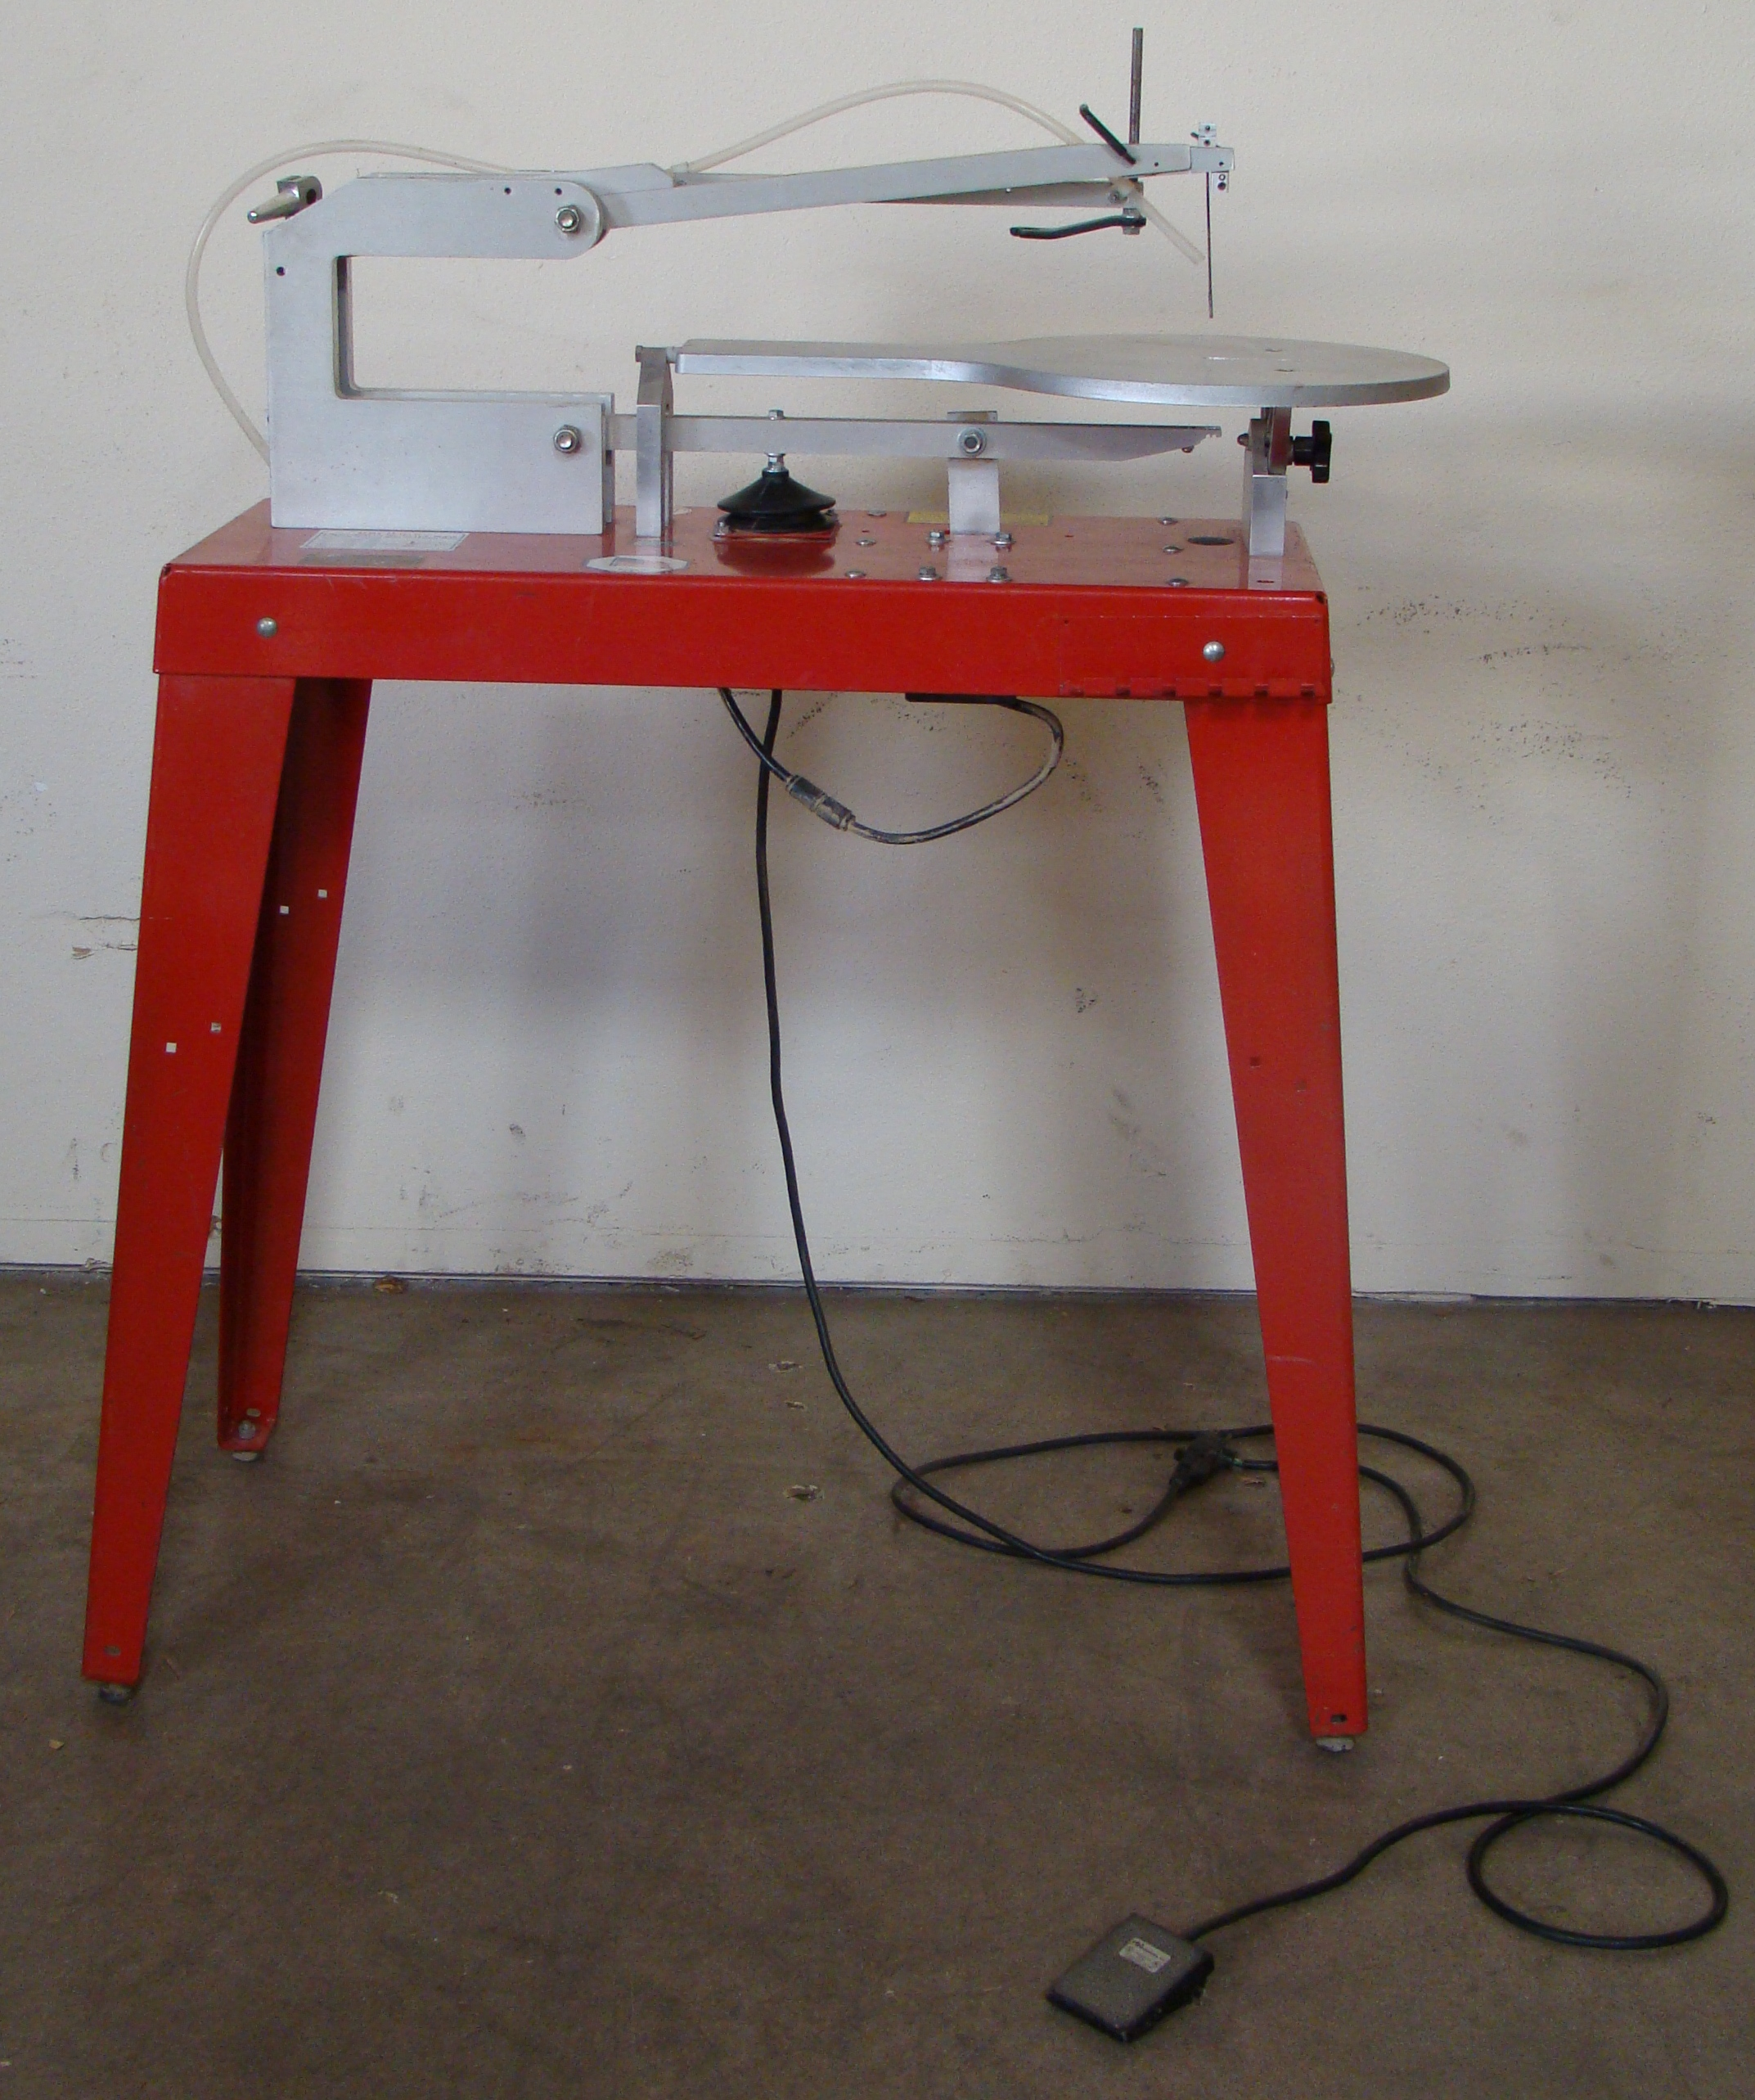 RBI Hawk Precision Scroll Saw Model 226VS 115 Volt - Image 5 of 8